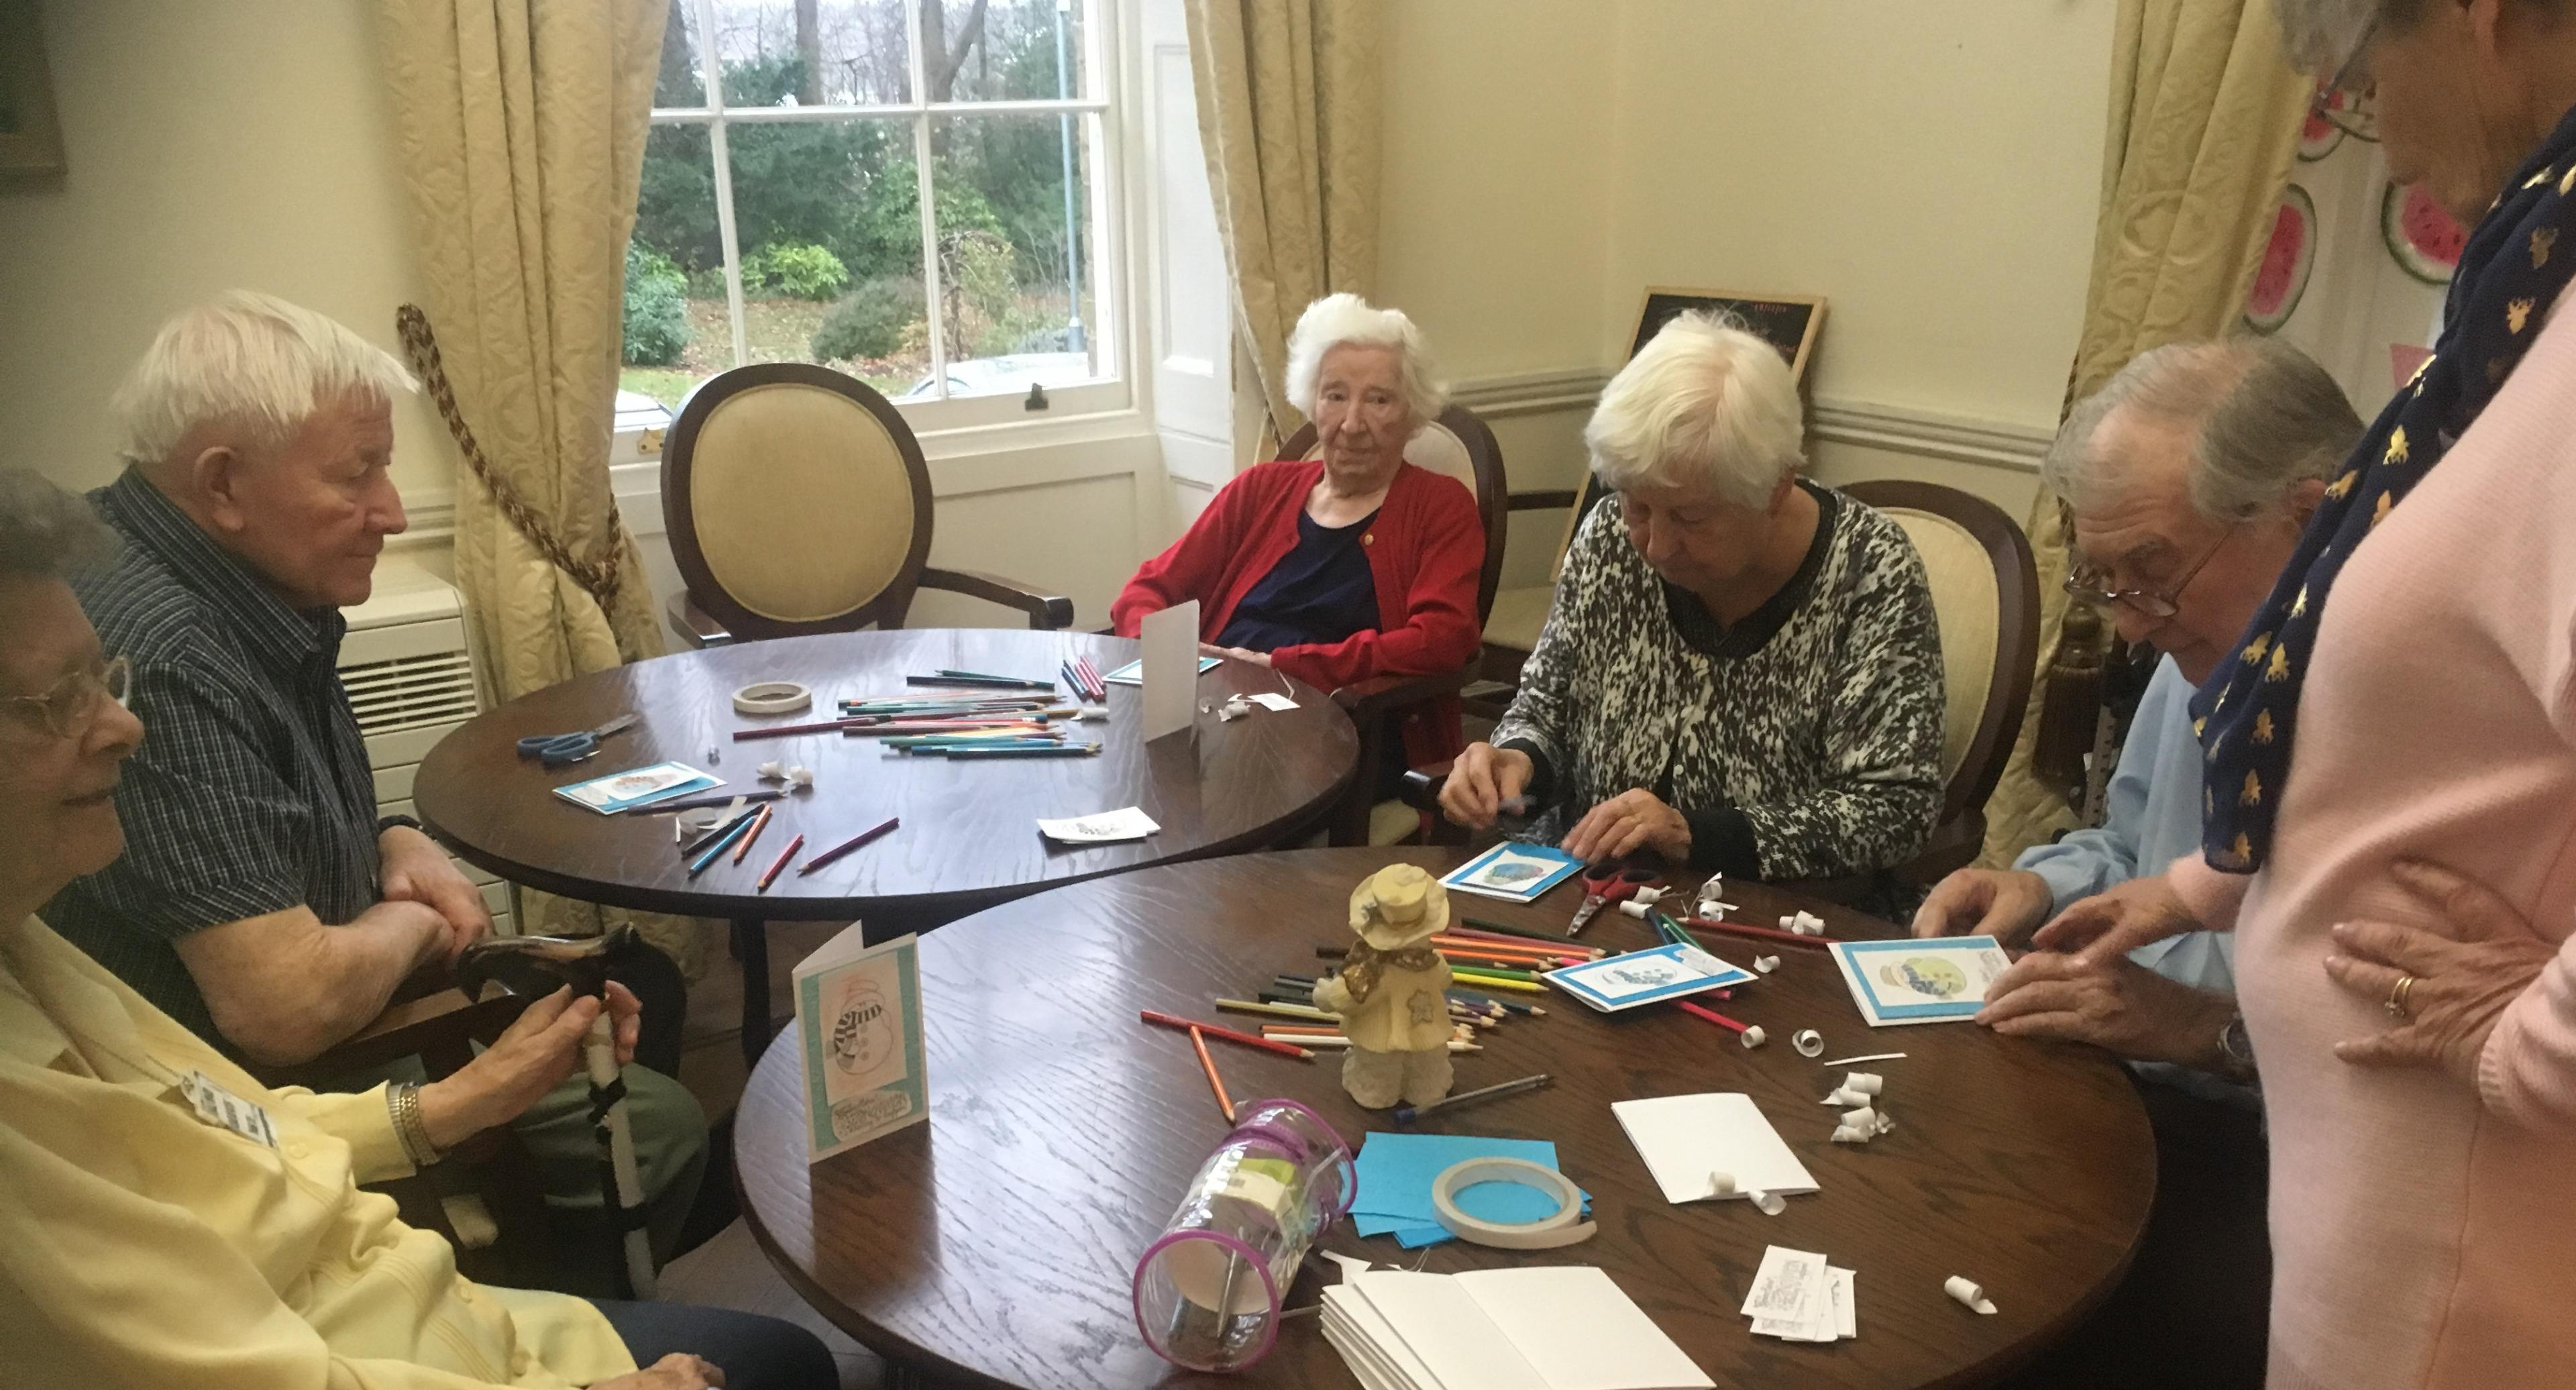 Making Christmas cards at Blackbrook House